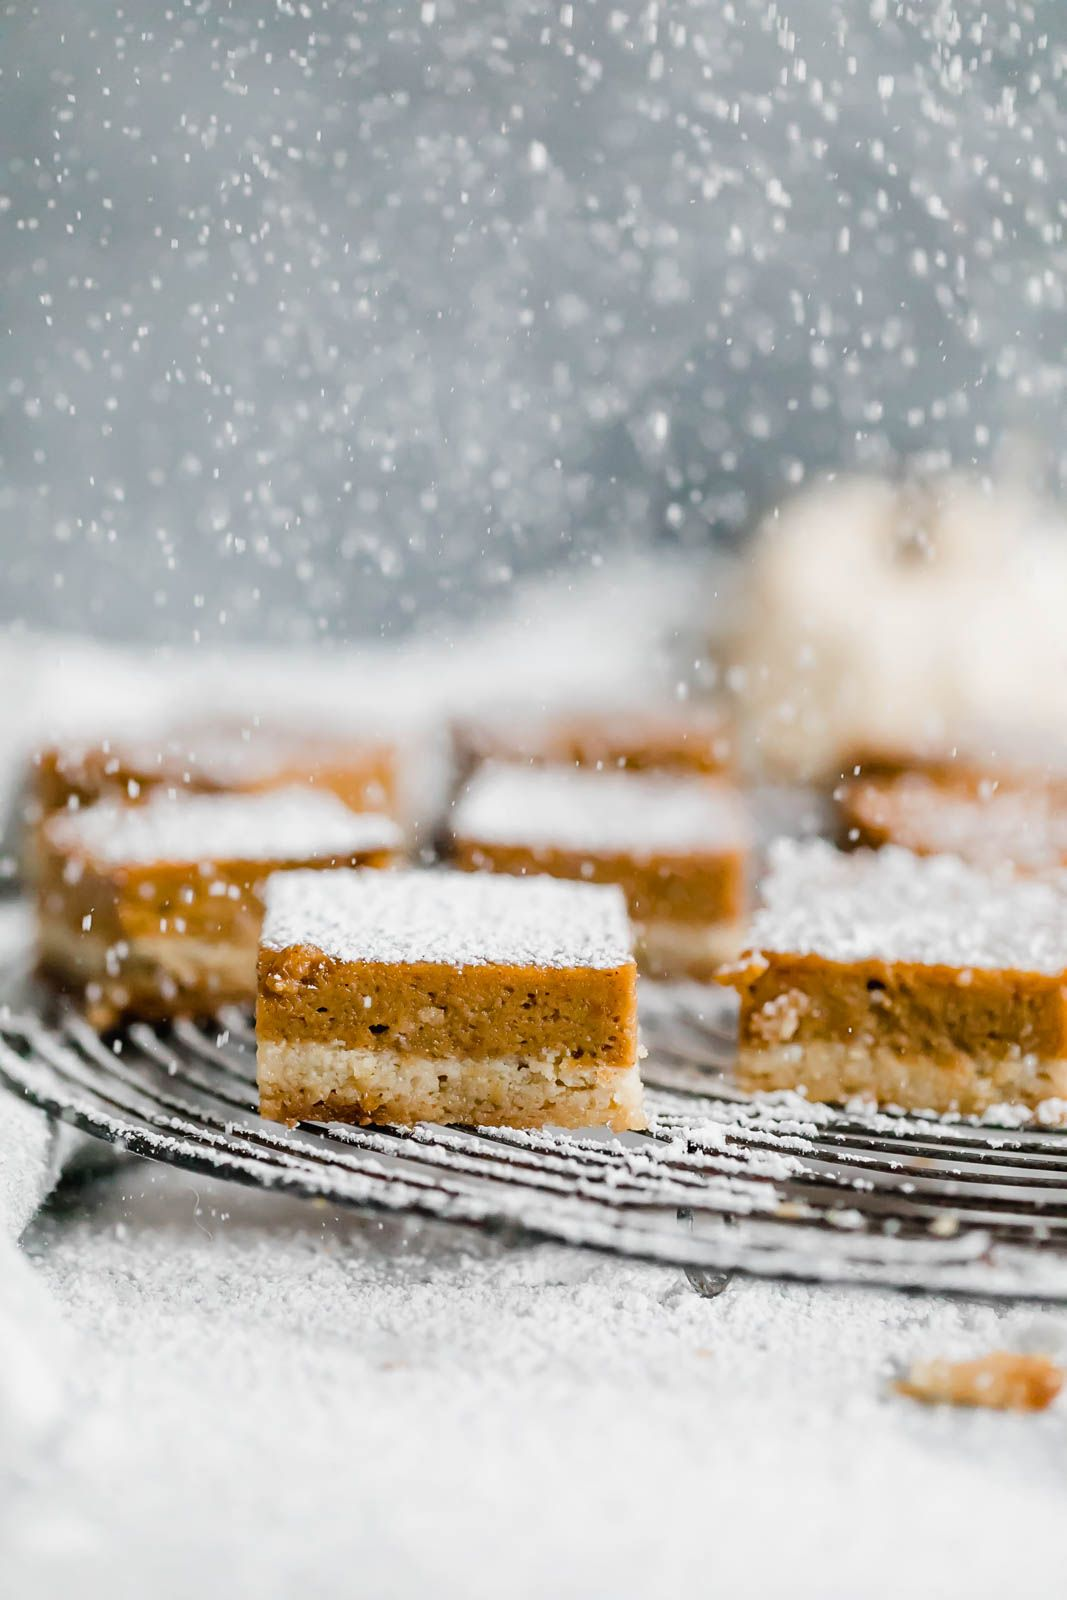 Paleo Pumpkin Pie Bars With Almond Flour Sugar Cookie